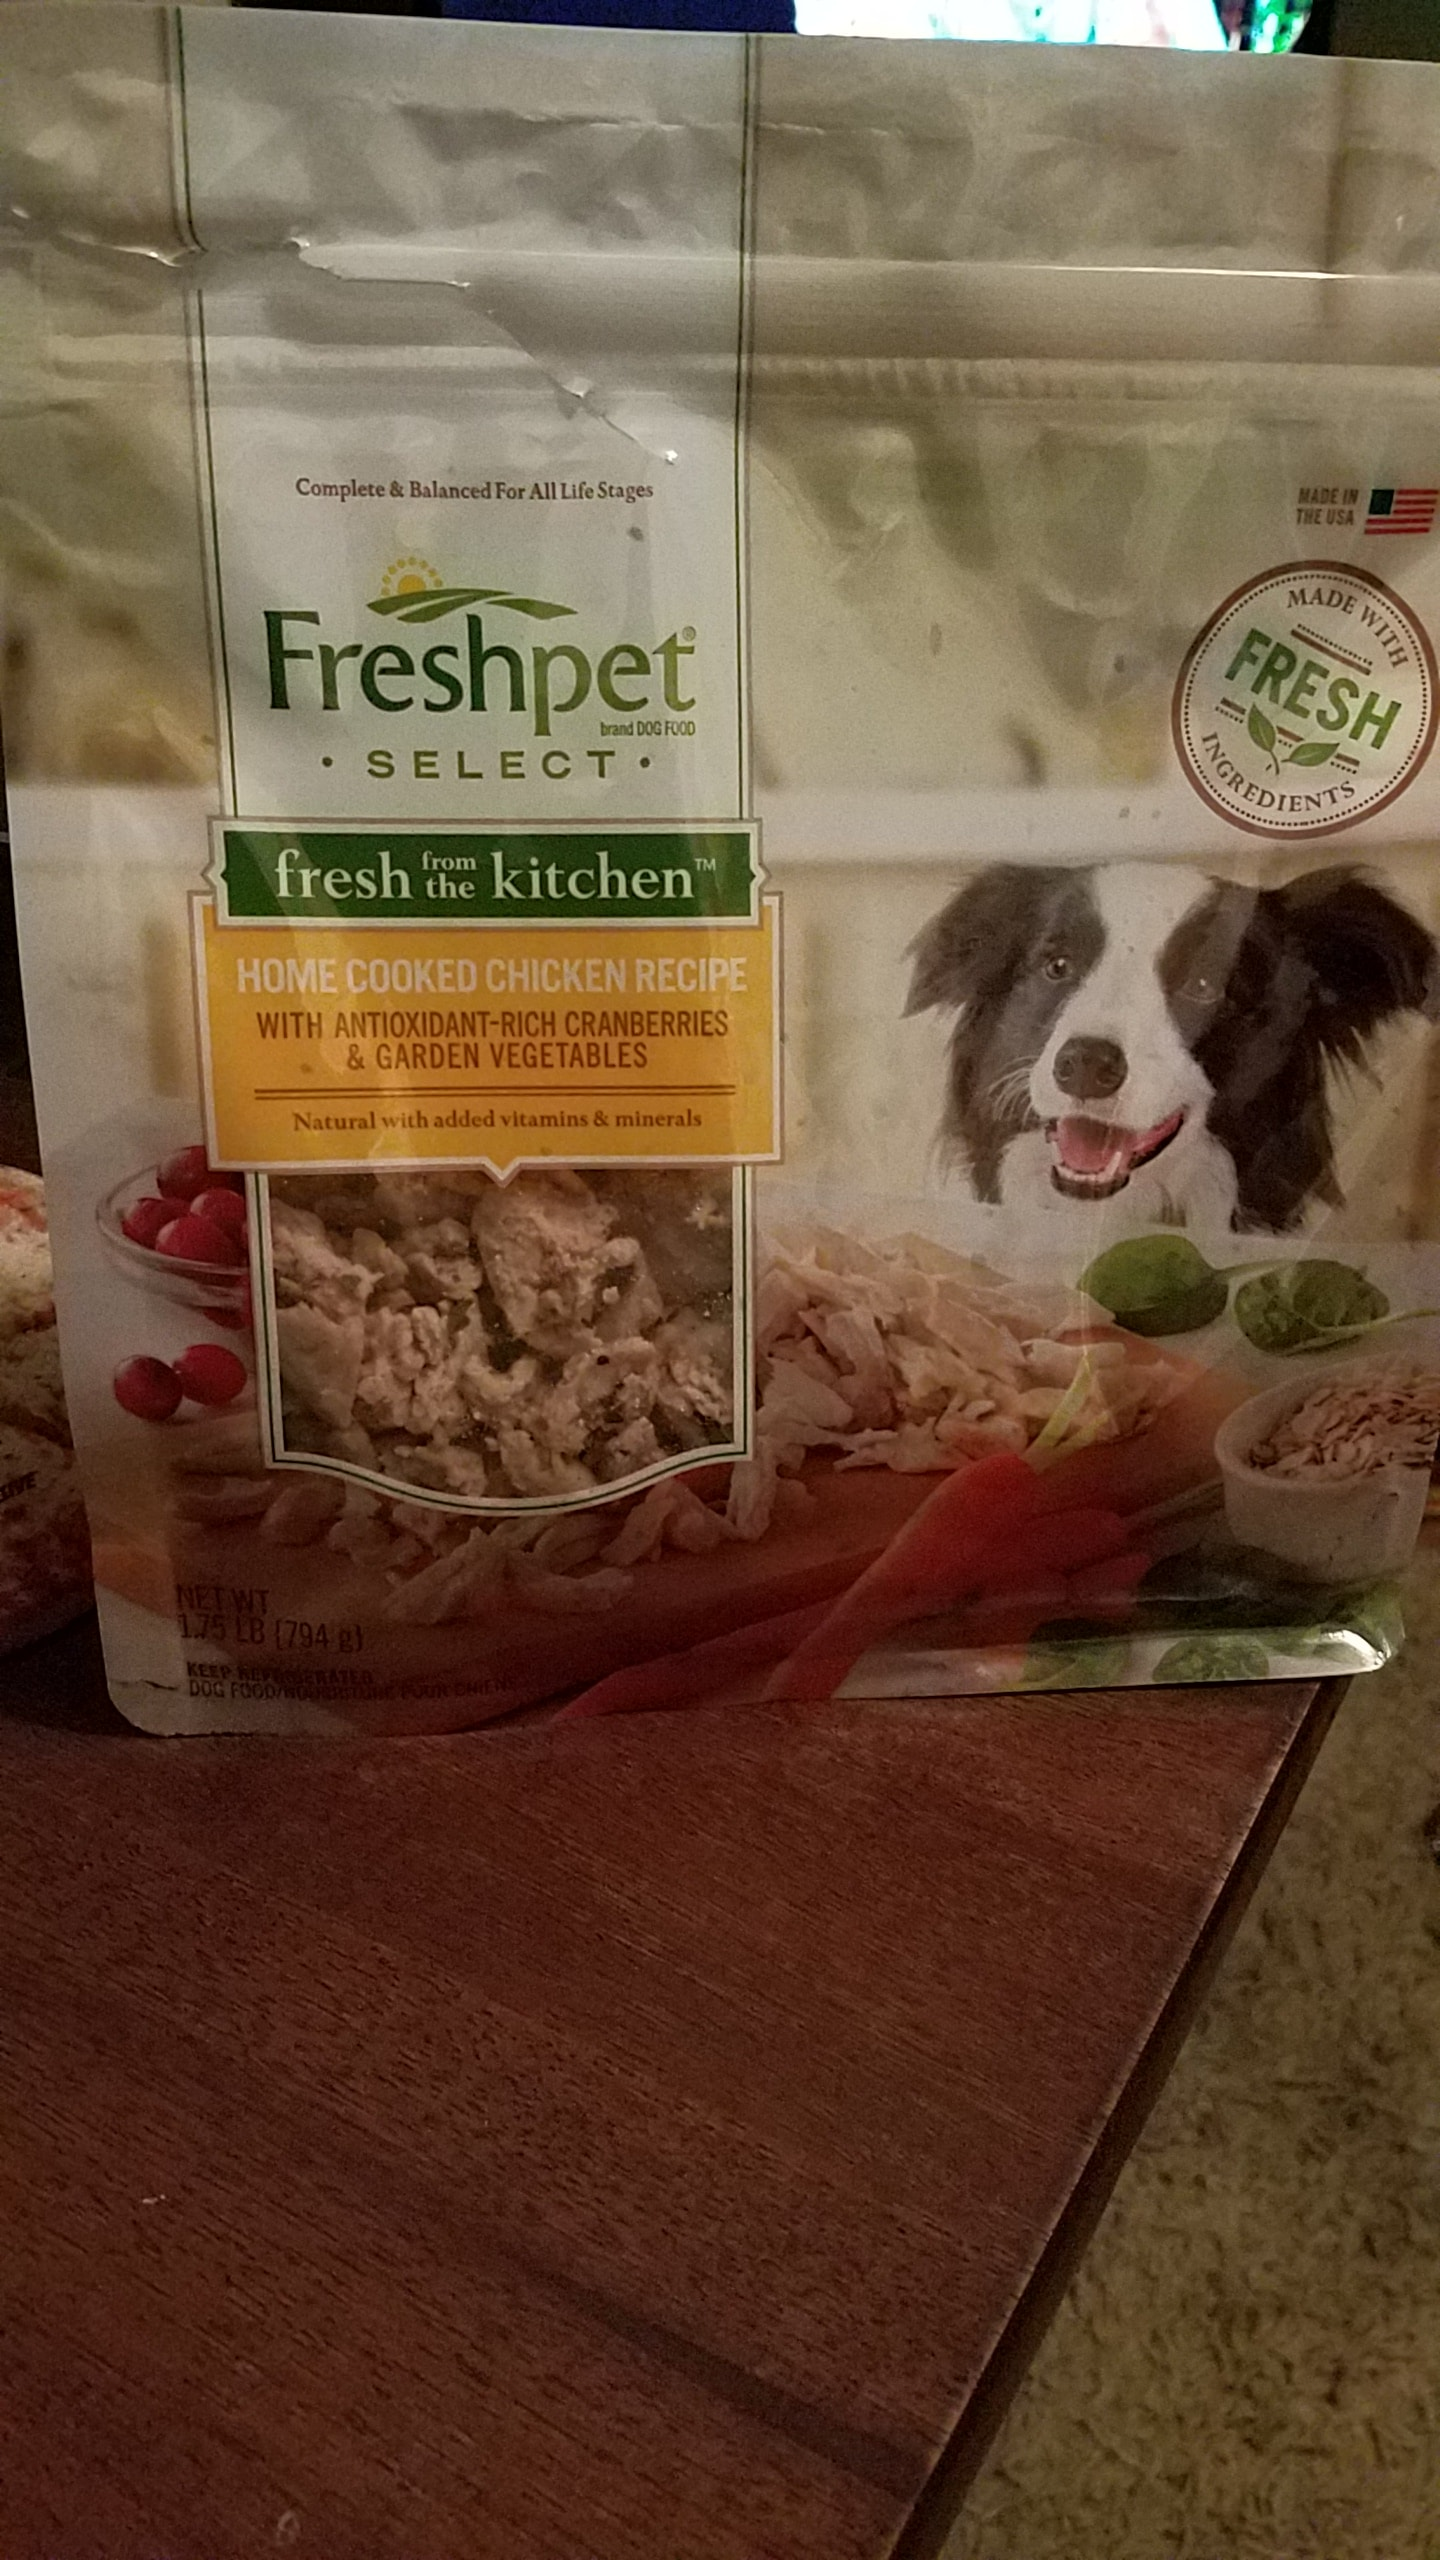 Freshpet review image